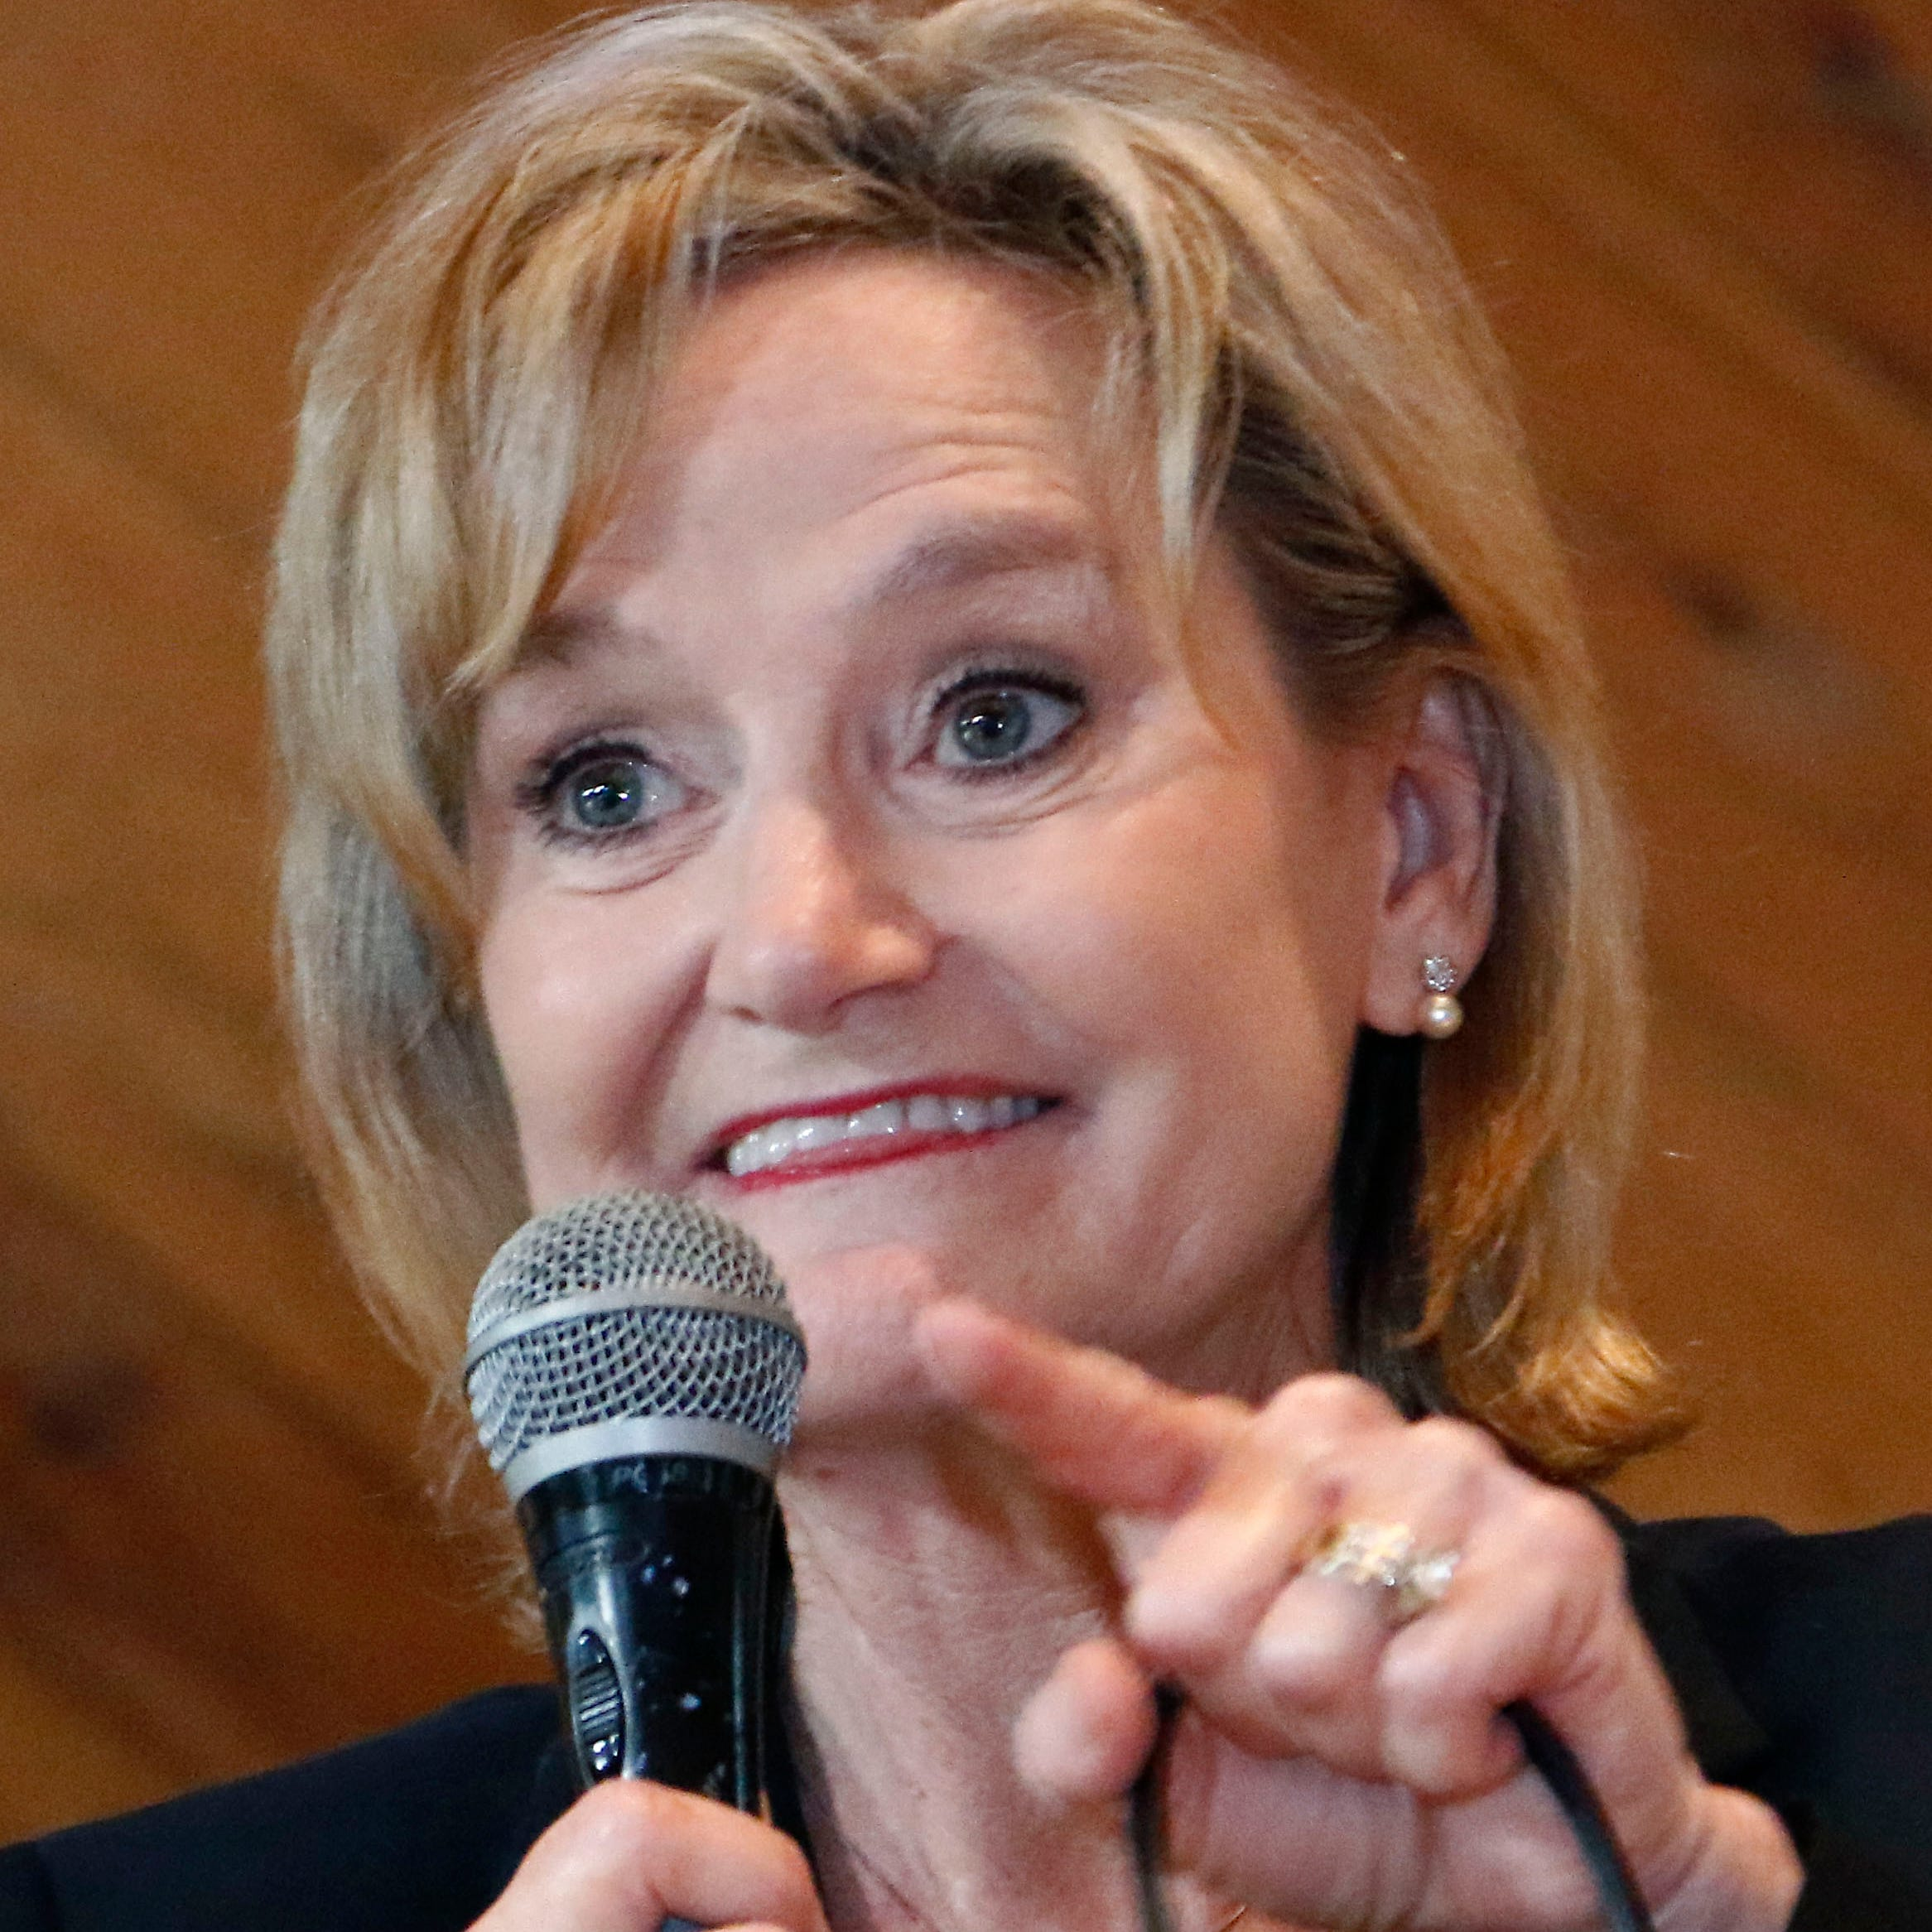 U.S. Sen. Cindy Hyde-Smith, R-Miss., addresses a gathering of supporters in Jackson, Miss., Monday, Nov. 5, 2018. Hyde-Smith hopes to get elected to serve the last two years of the six-year term vacated when Republican Thad Cochran retired for health reasons.